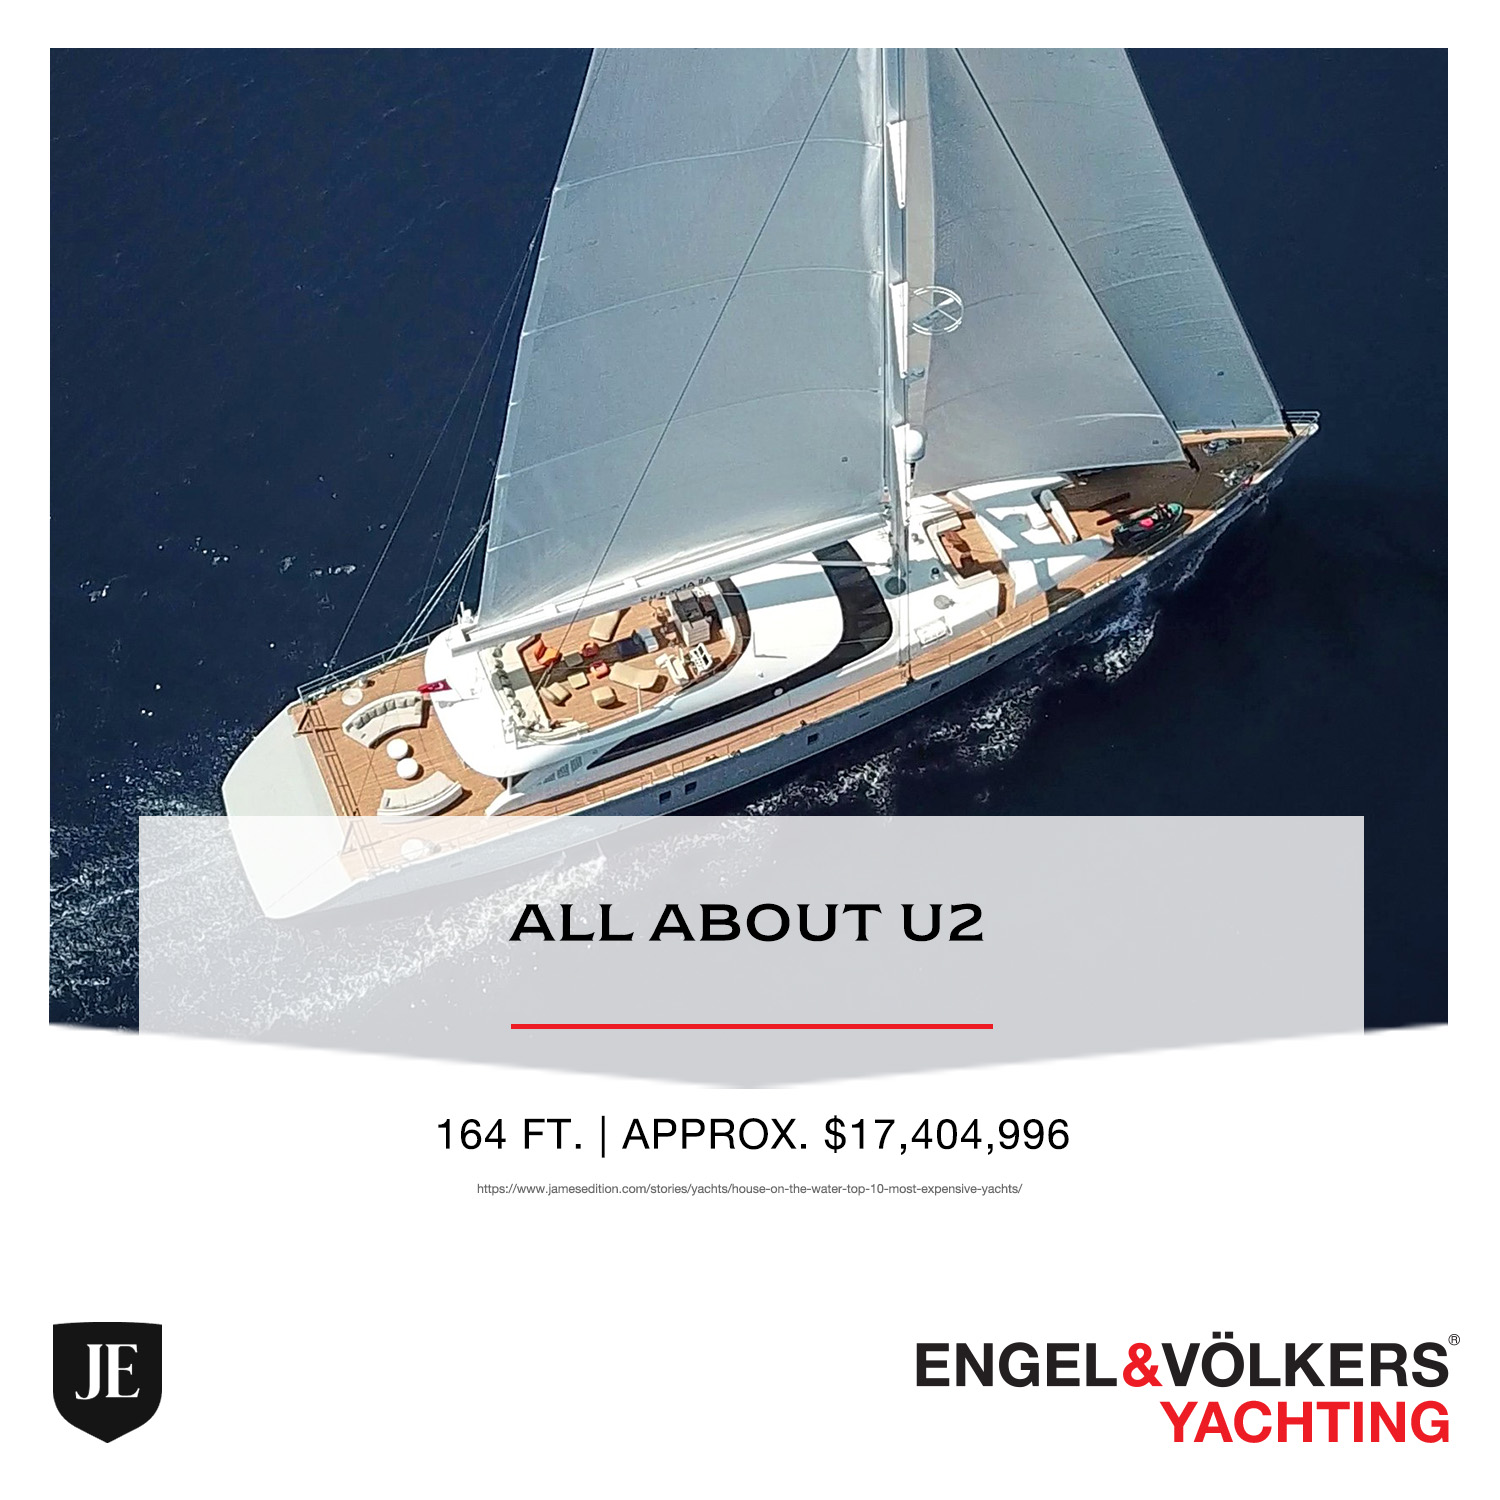 All About U2 YACHT ENGEL & VOLKERS YACHTING